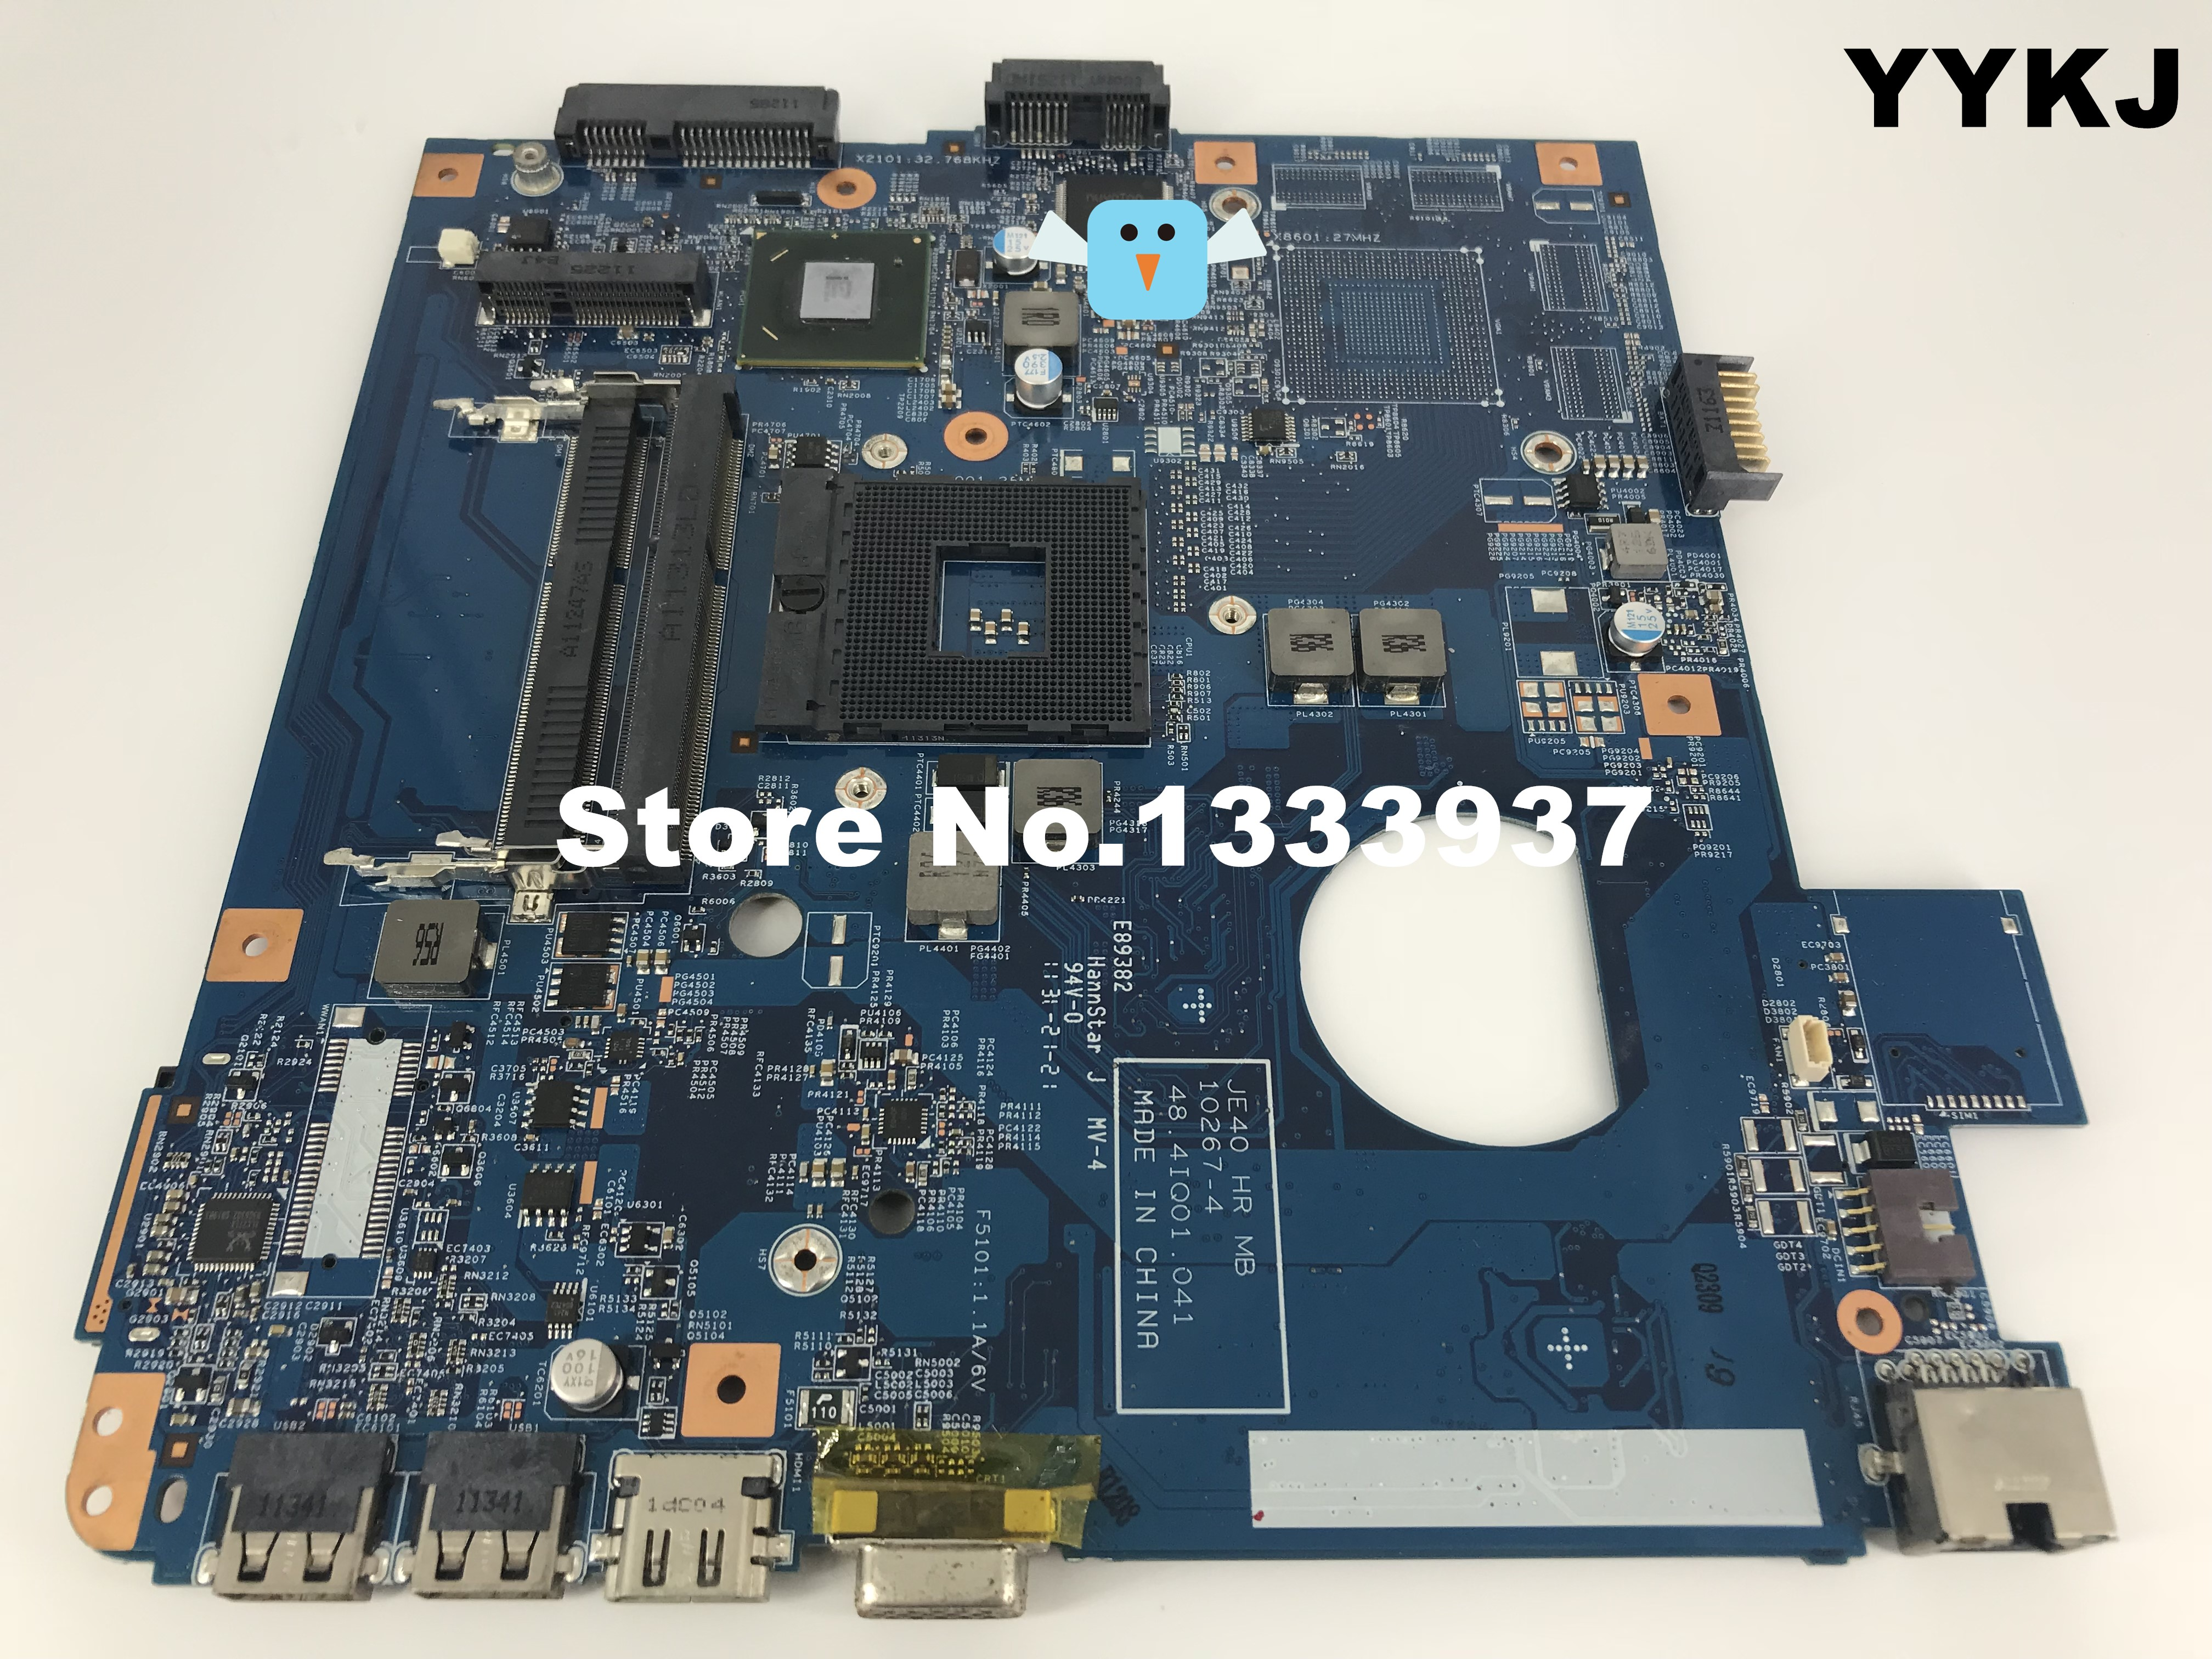 Buy Acer Aspire 4752 And Get Free Shipping On Keyboard 4752g 4752z 4752zg